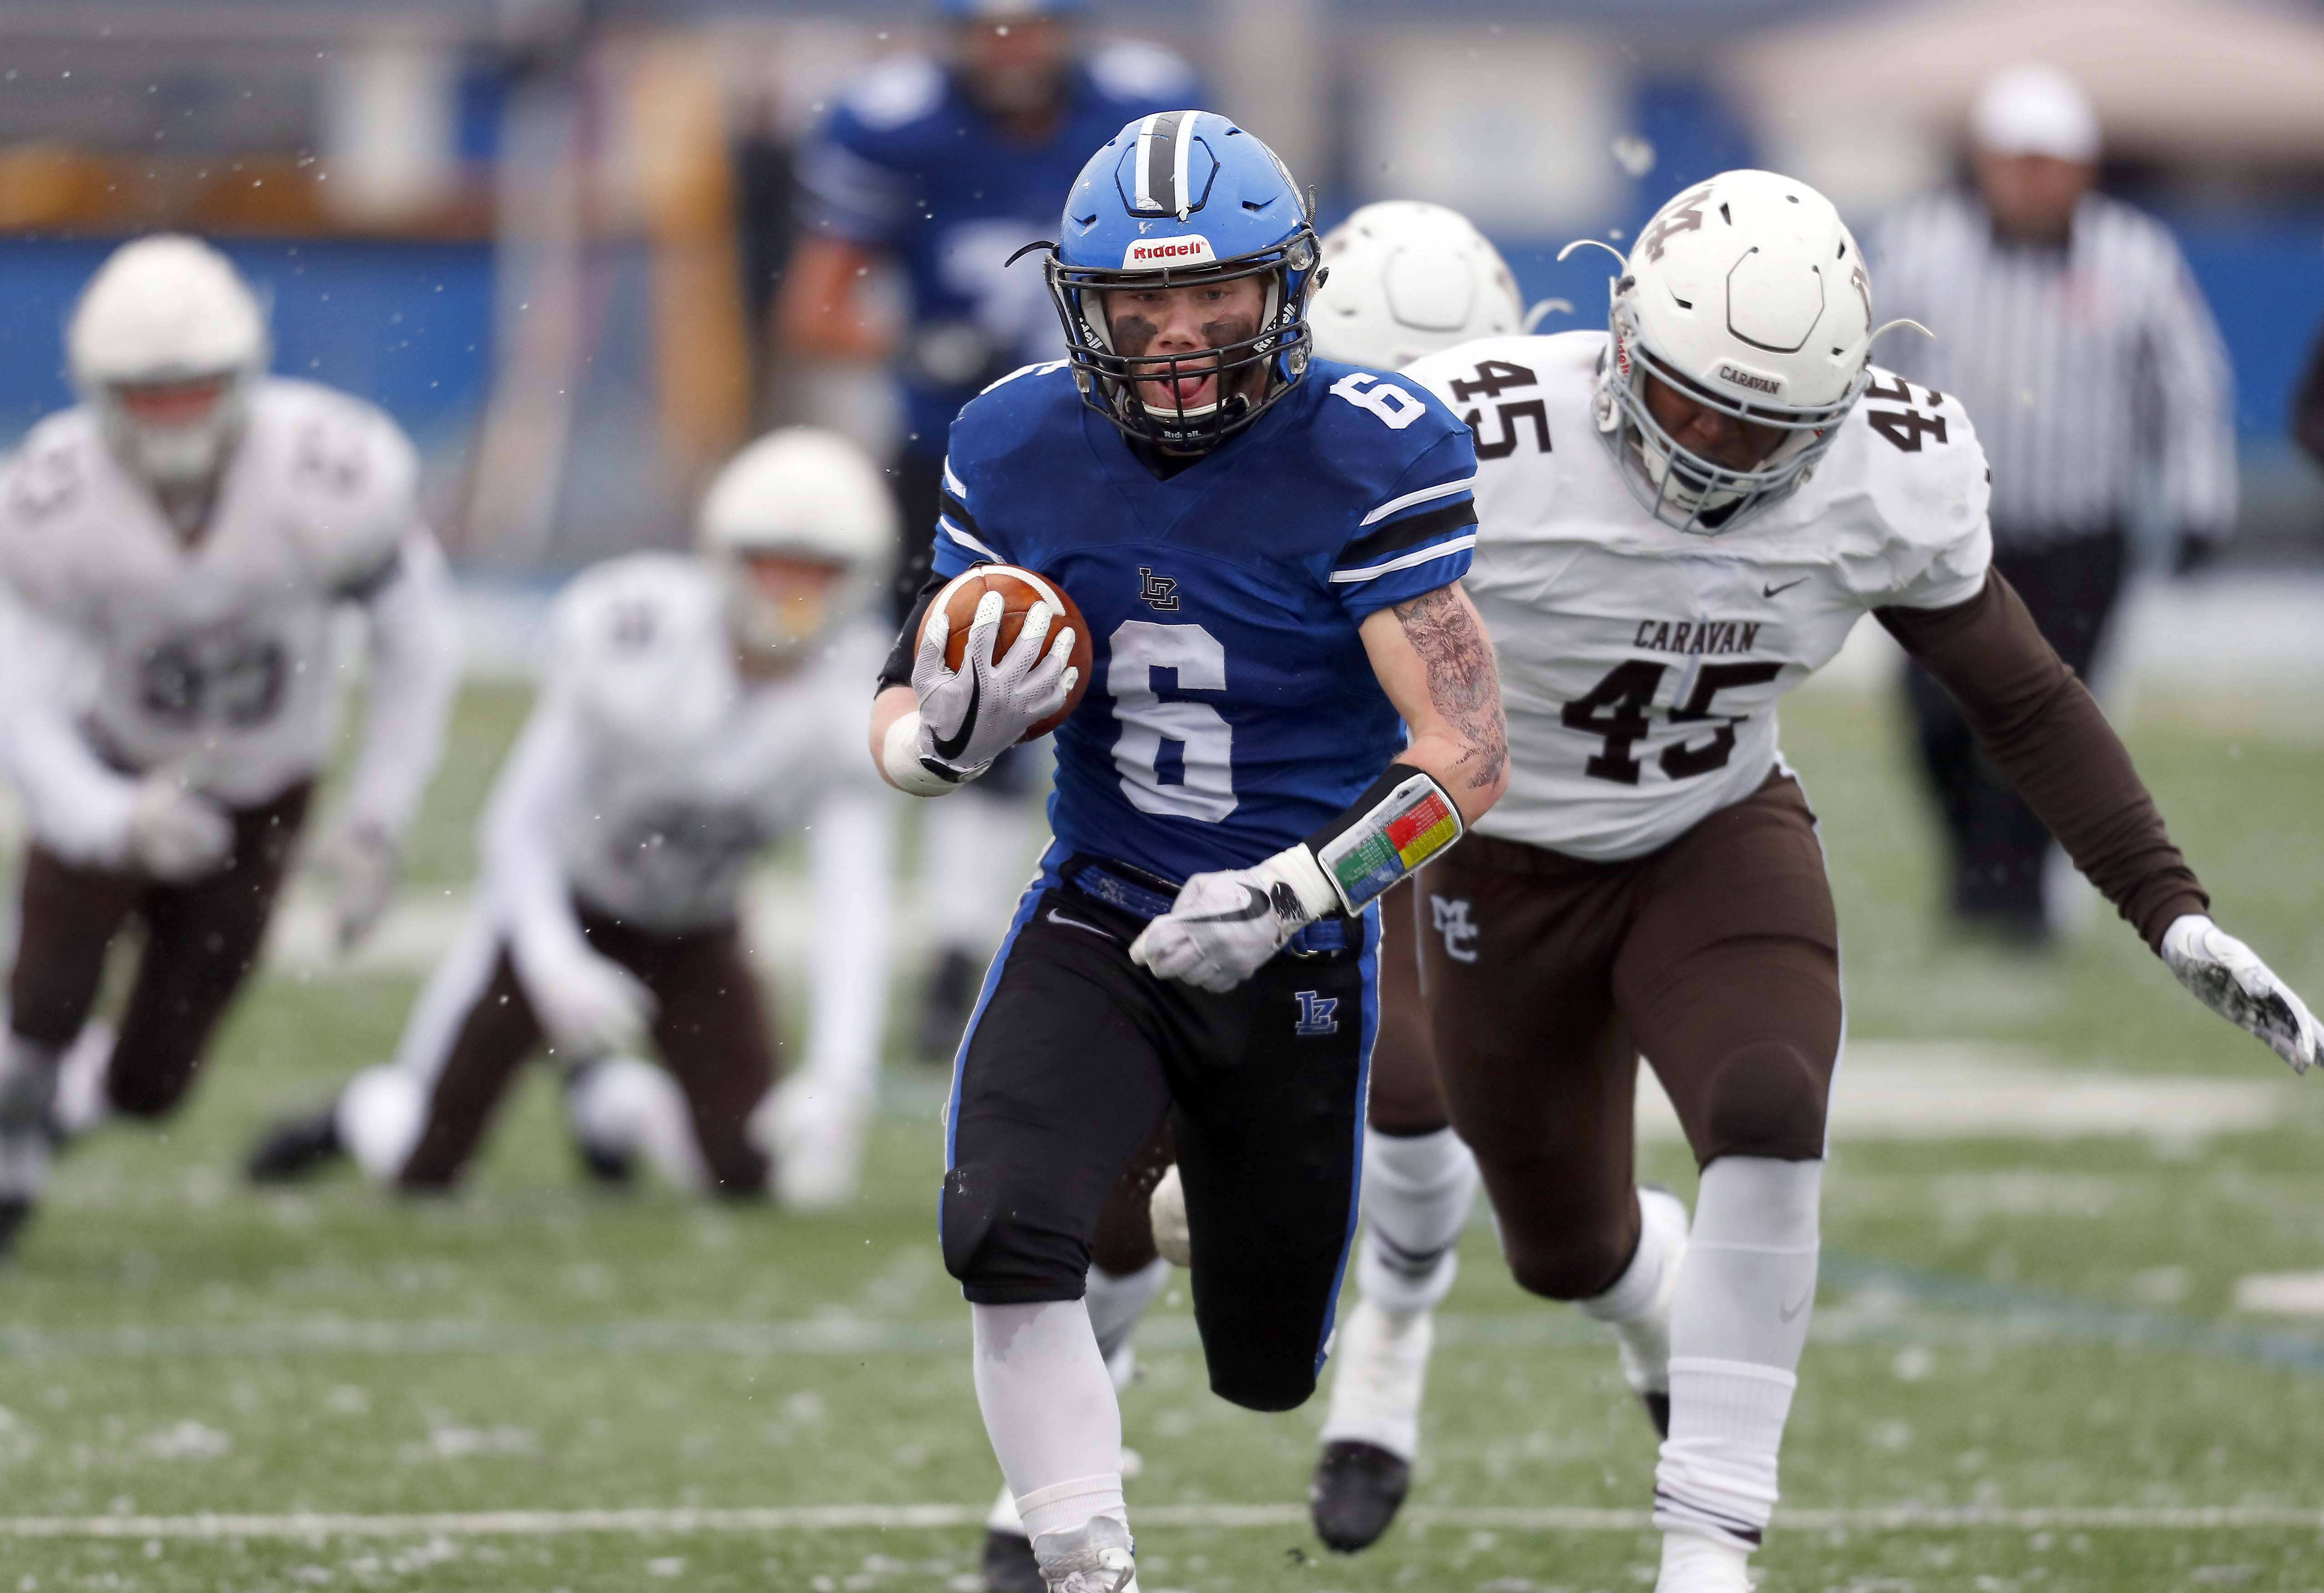 Lake Zurich's Joey Stutzman (6) moves upfield against visiting Mt. Carmel on Saturday during the Class 7A state semifinals.